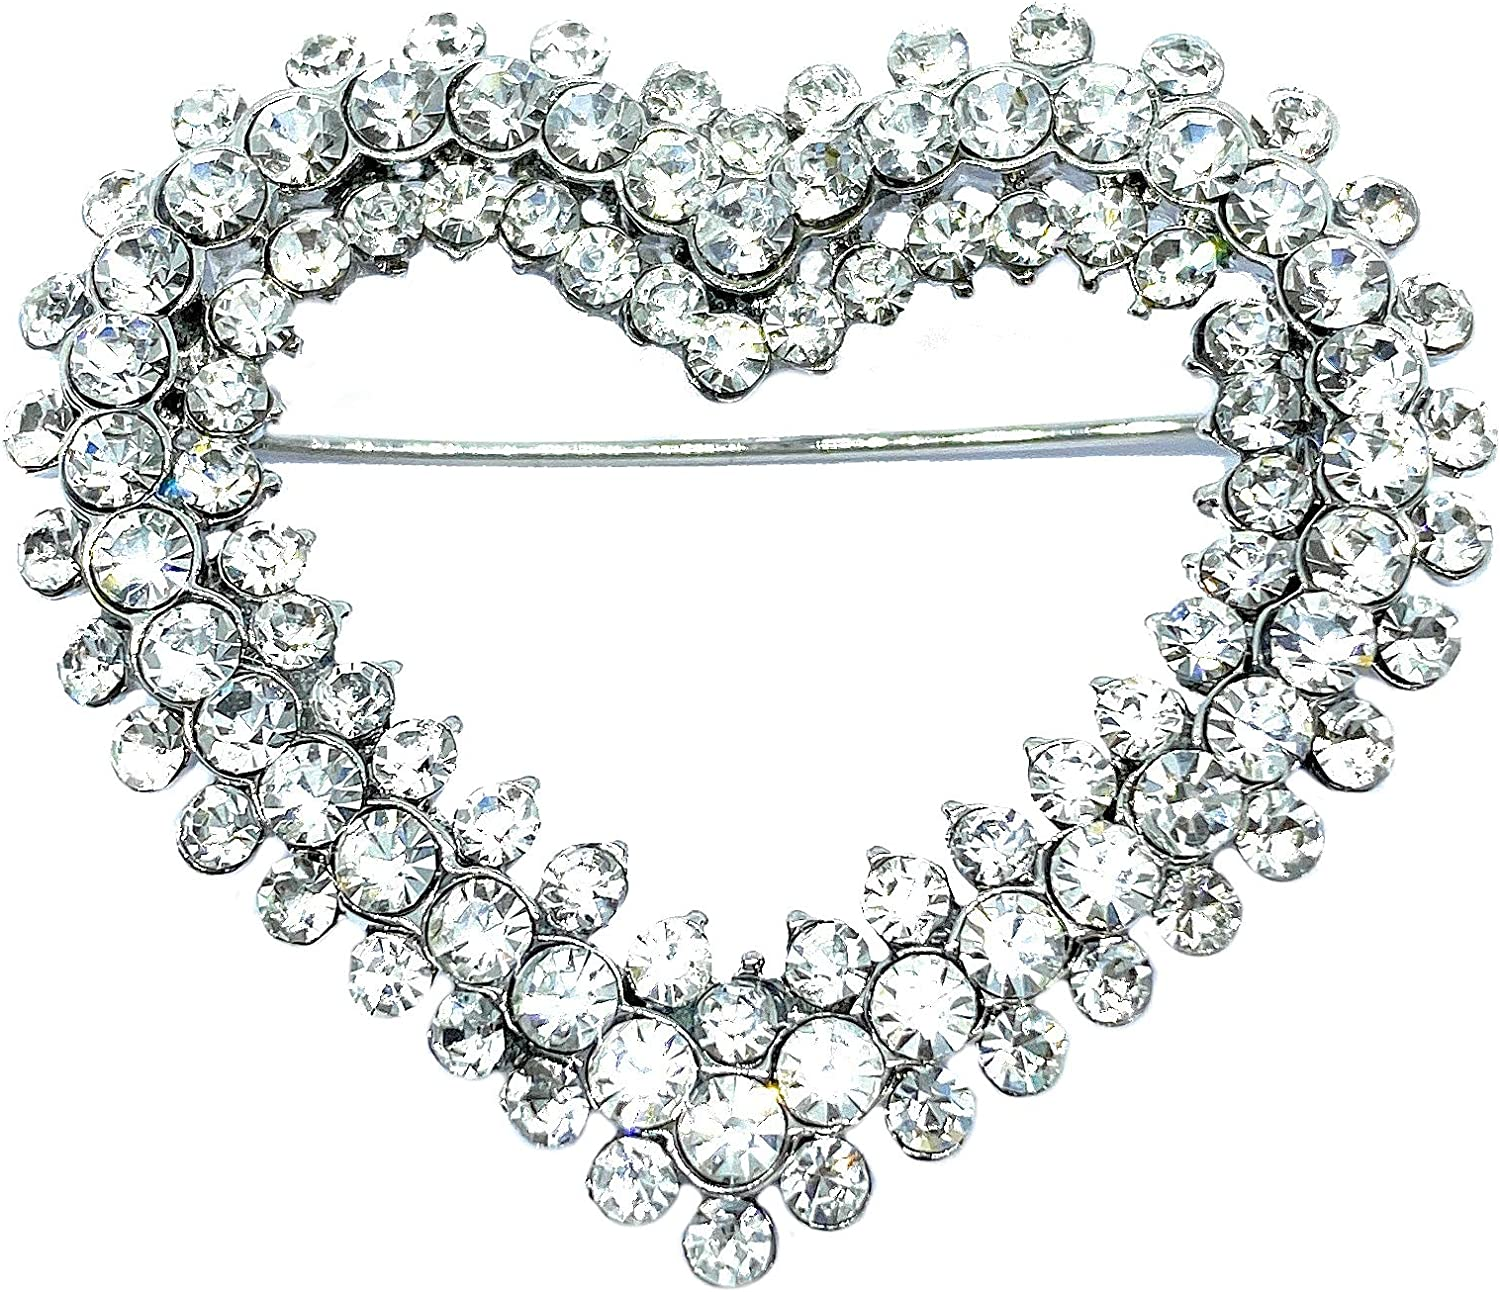 Crystal Heart Brooch 4.5cm x 4cm Includes Gift Box Crystal Heart Pendant with Chain Approx Brooches for Women